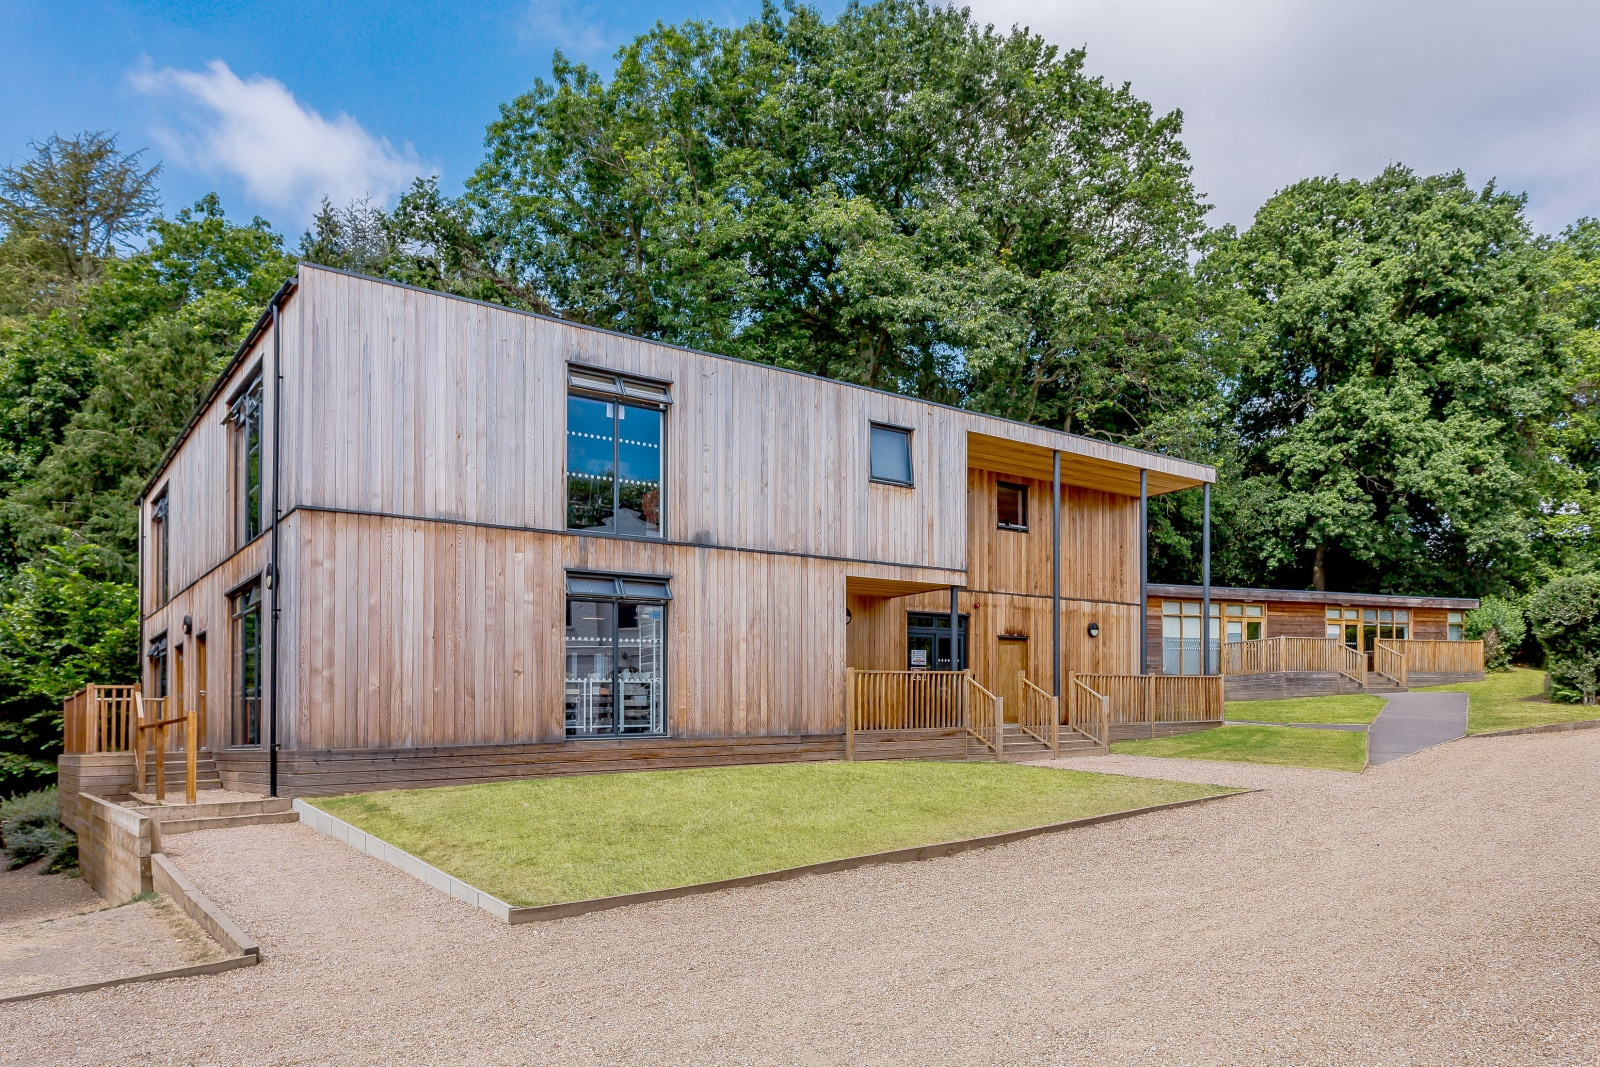 Modular timber frame 2 storey eco classrooms at Claremont Fan School by TGEscapes